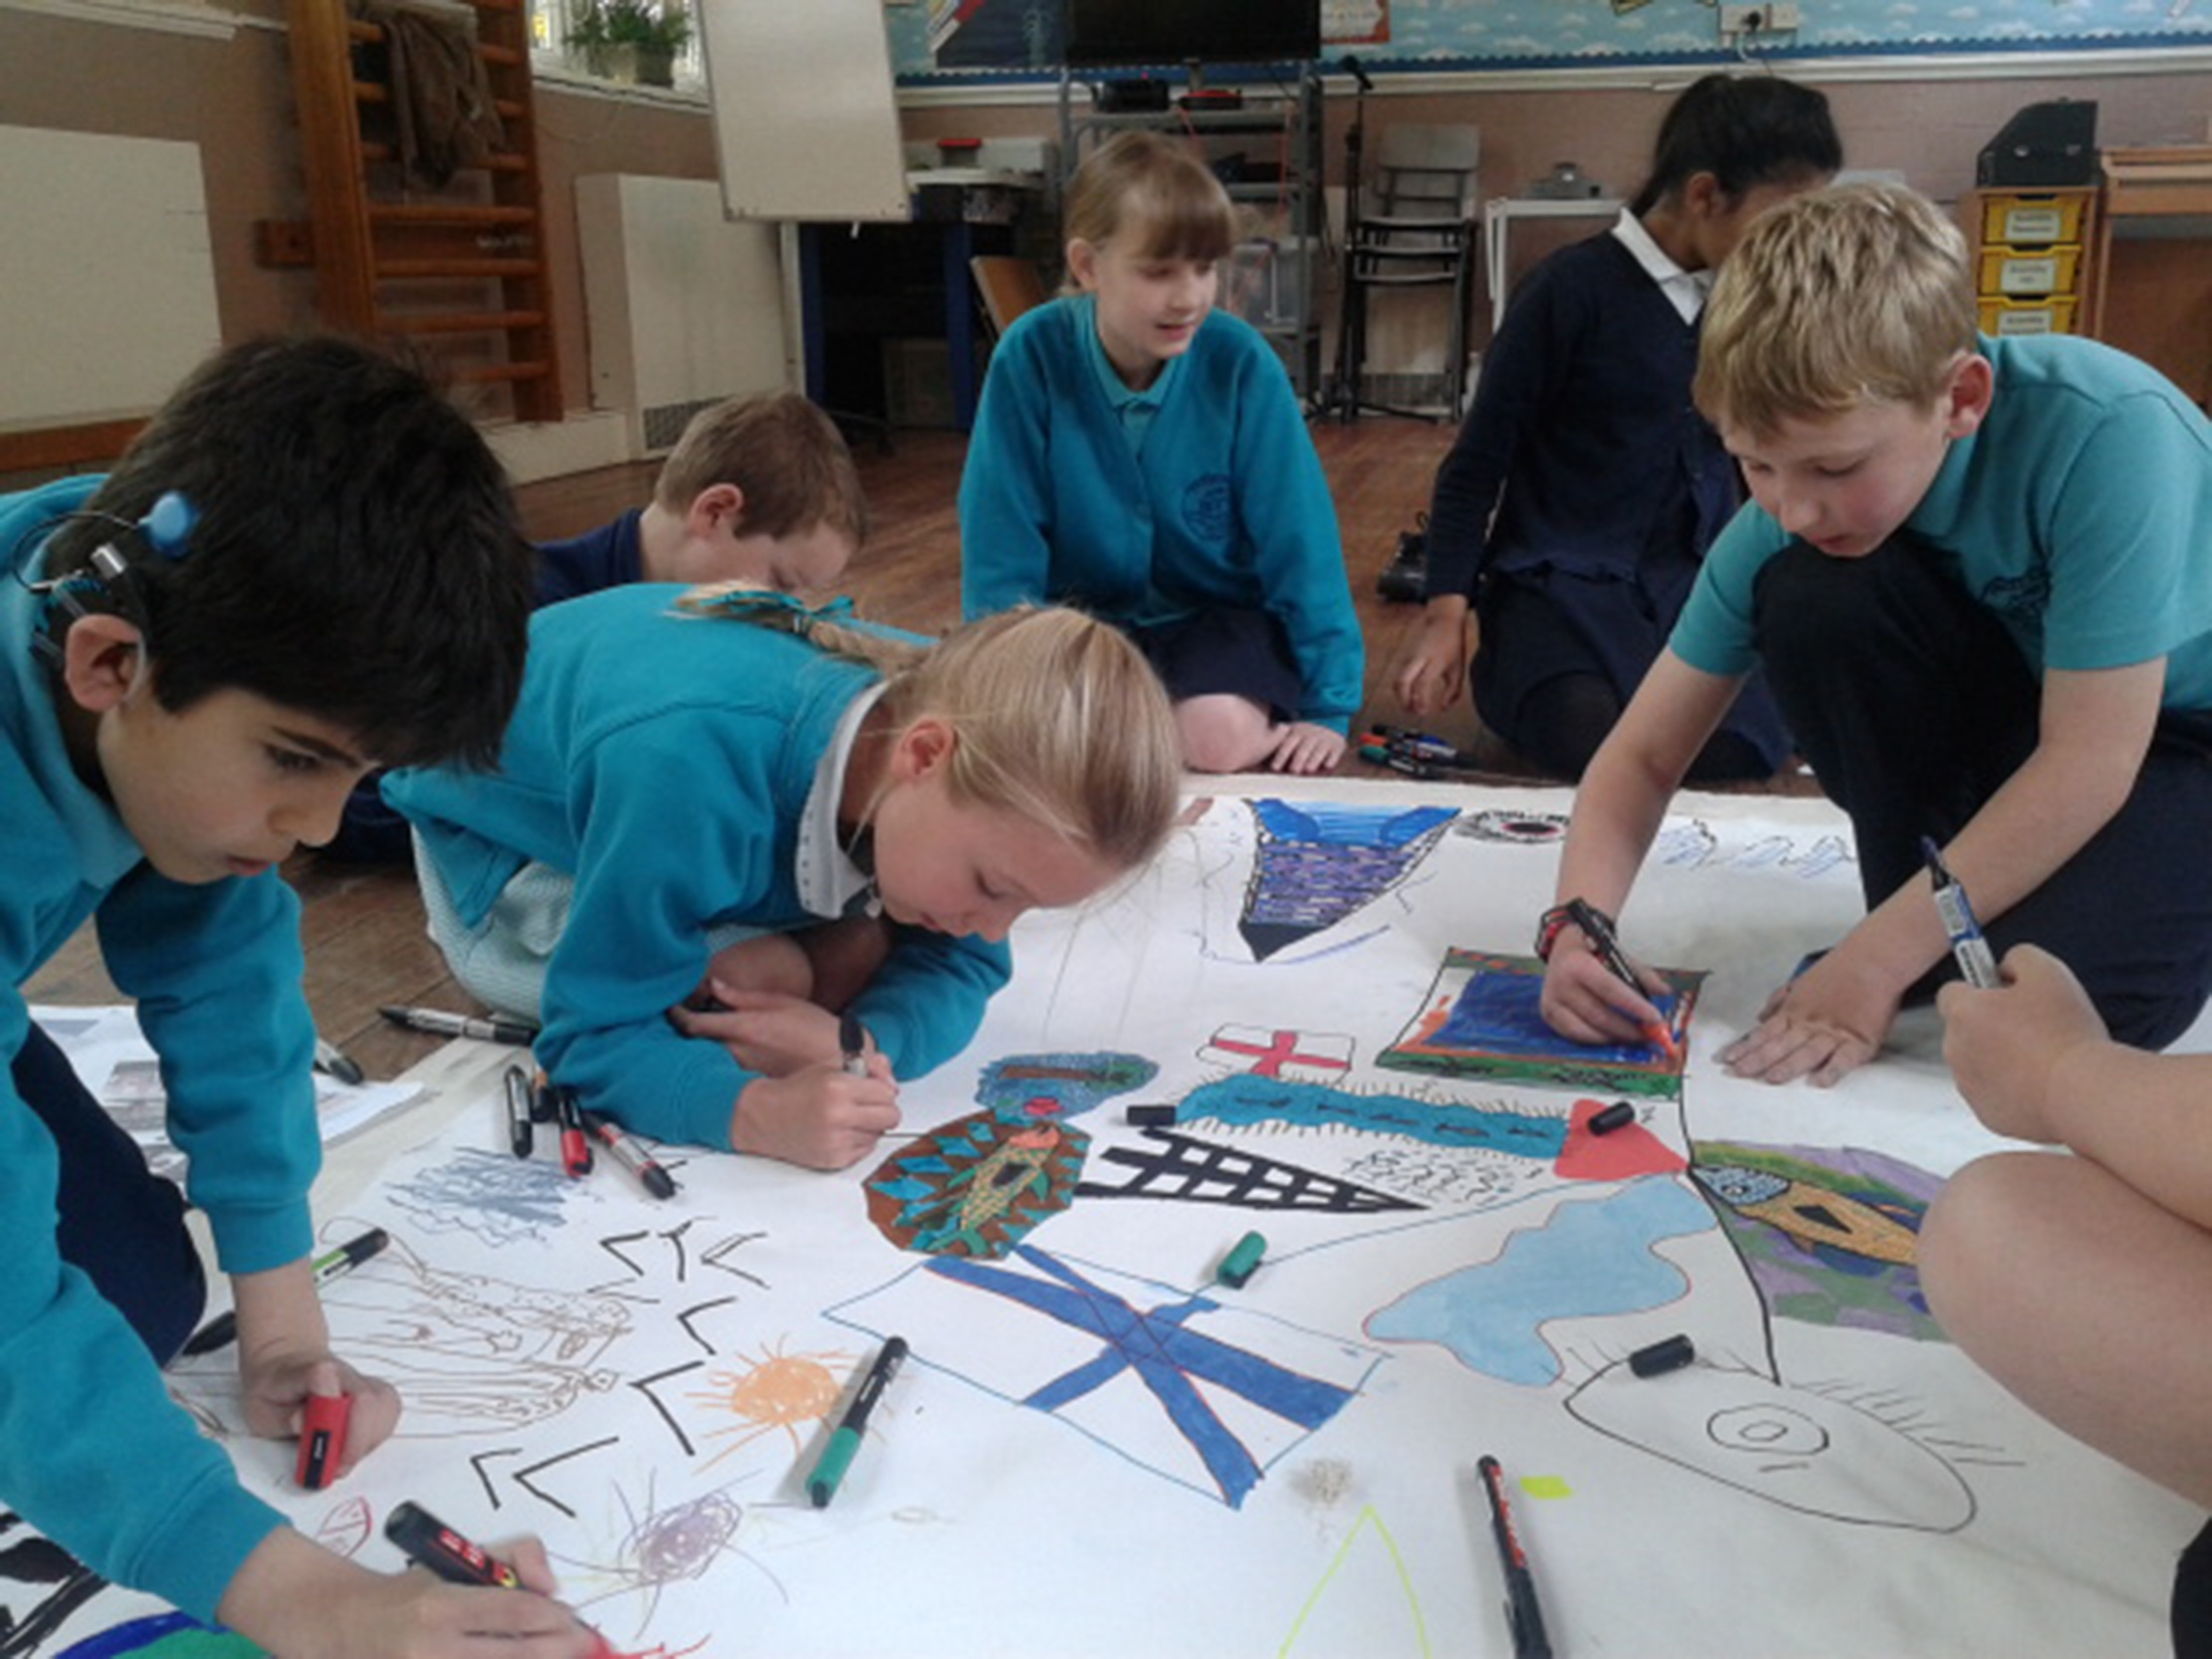 Friezland Primary School pupils working on My Europe project, Manchester, 2014 - 2.jpg